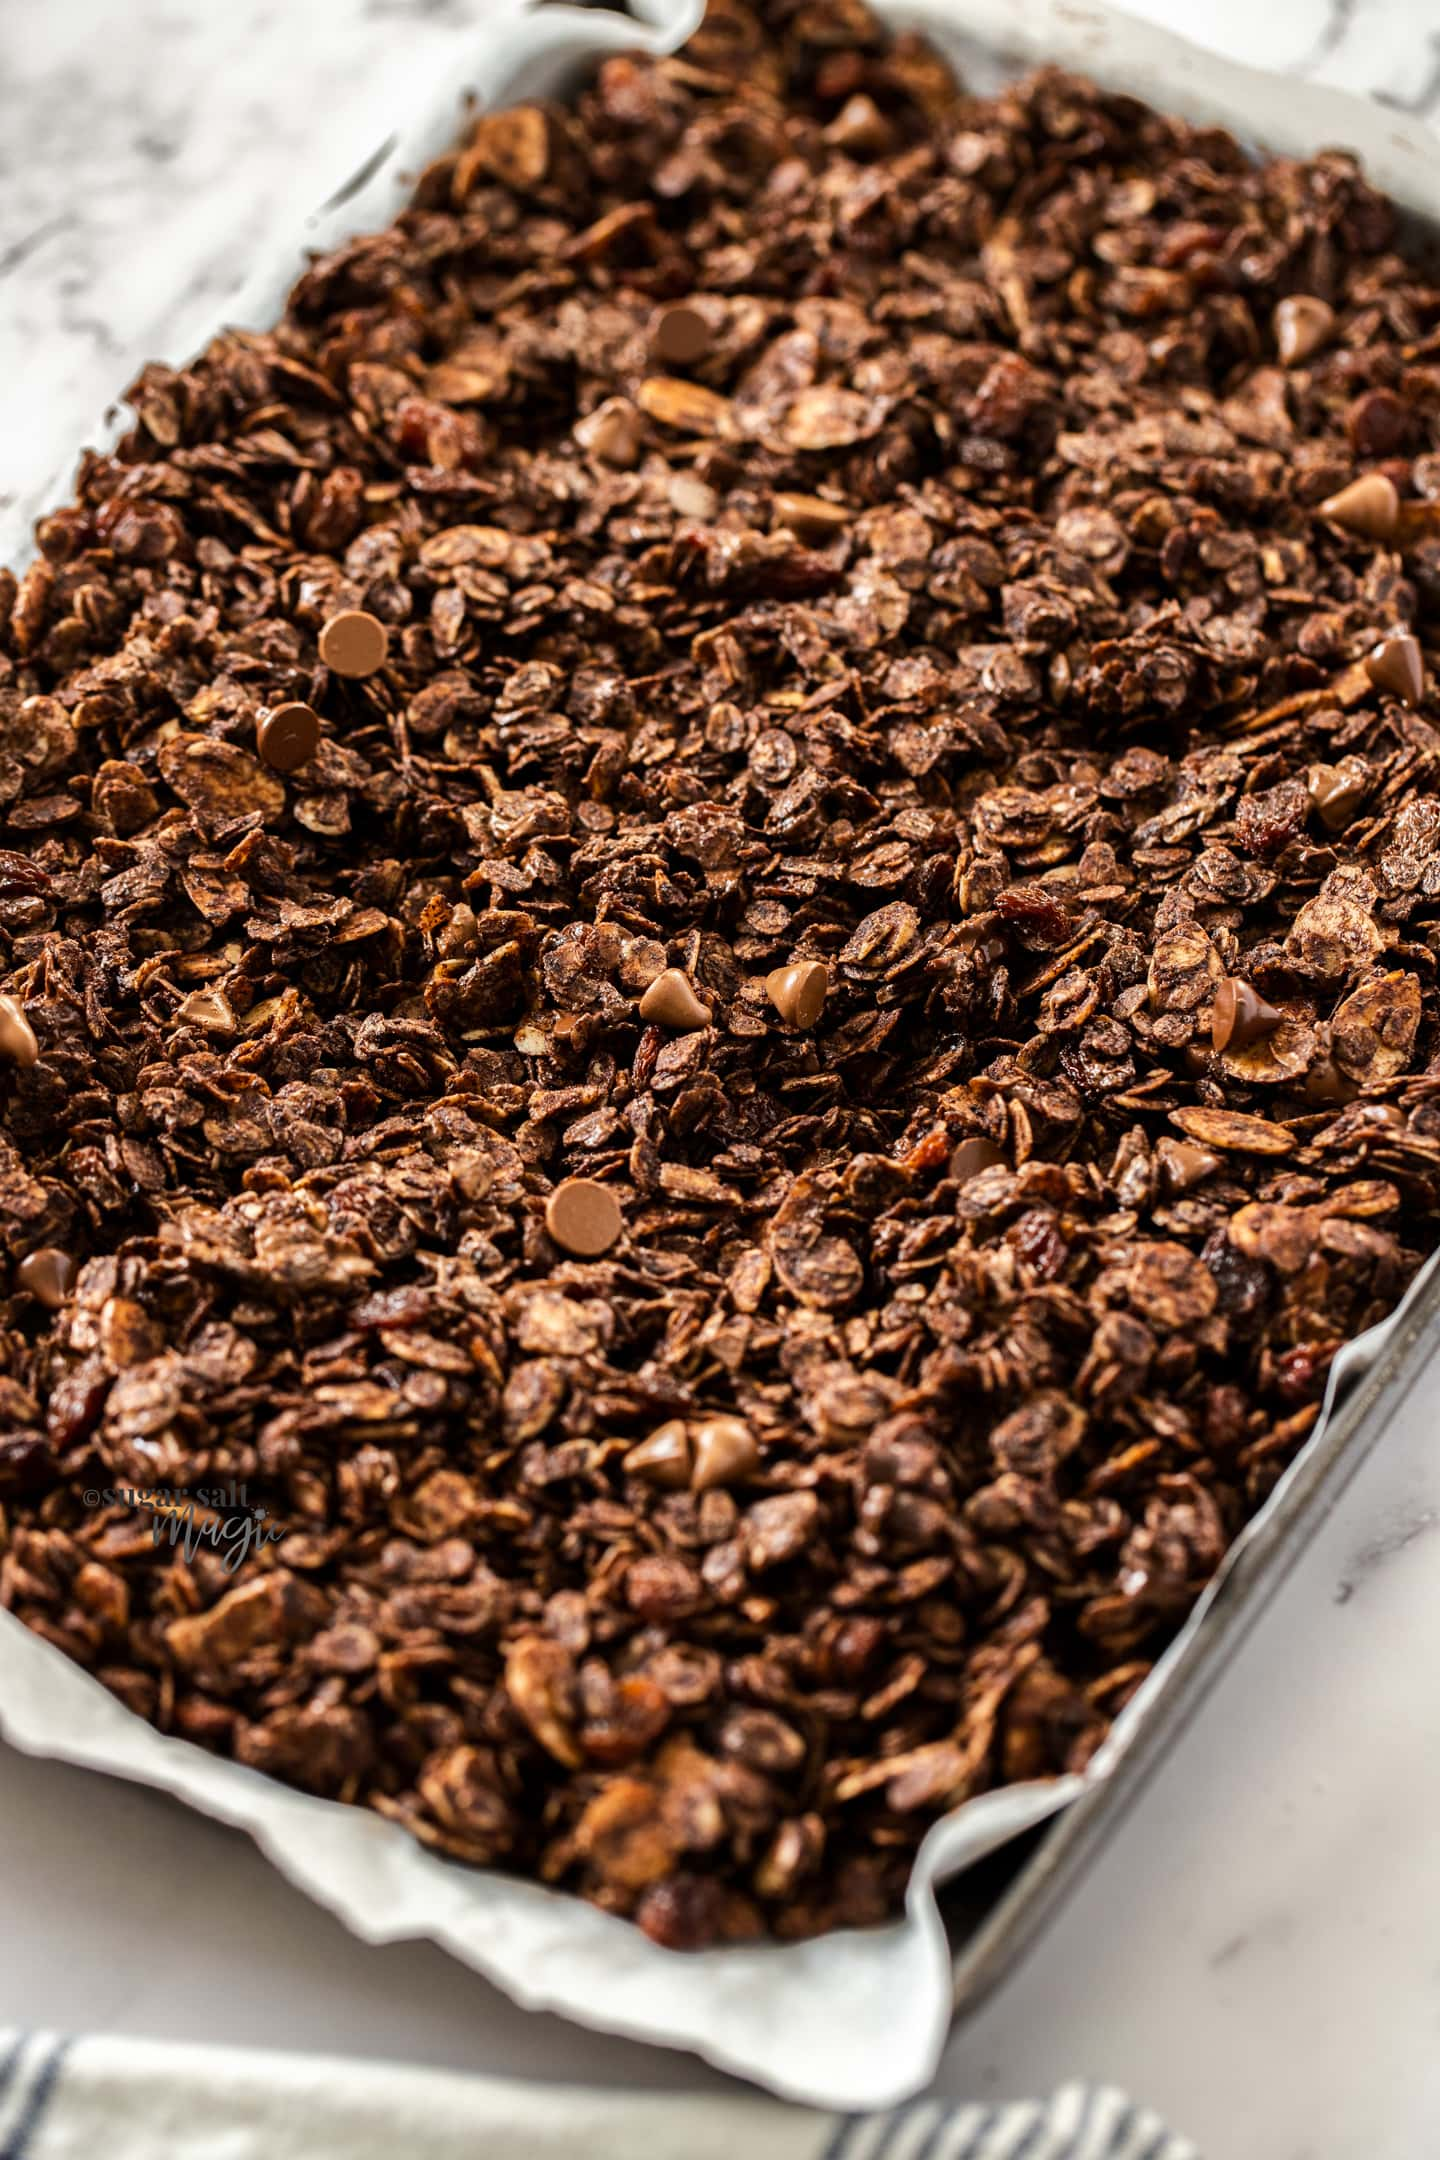 Closeup of chocolate granola on a baking tray.